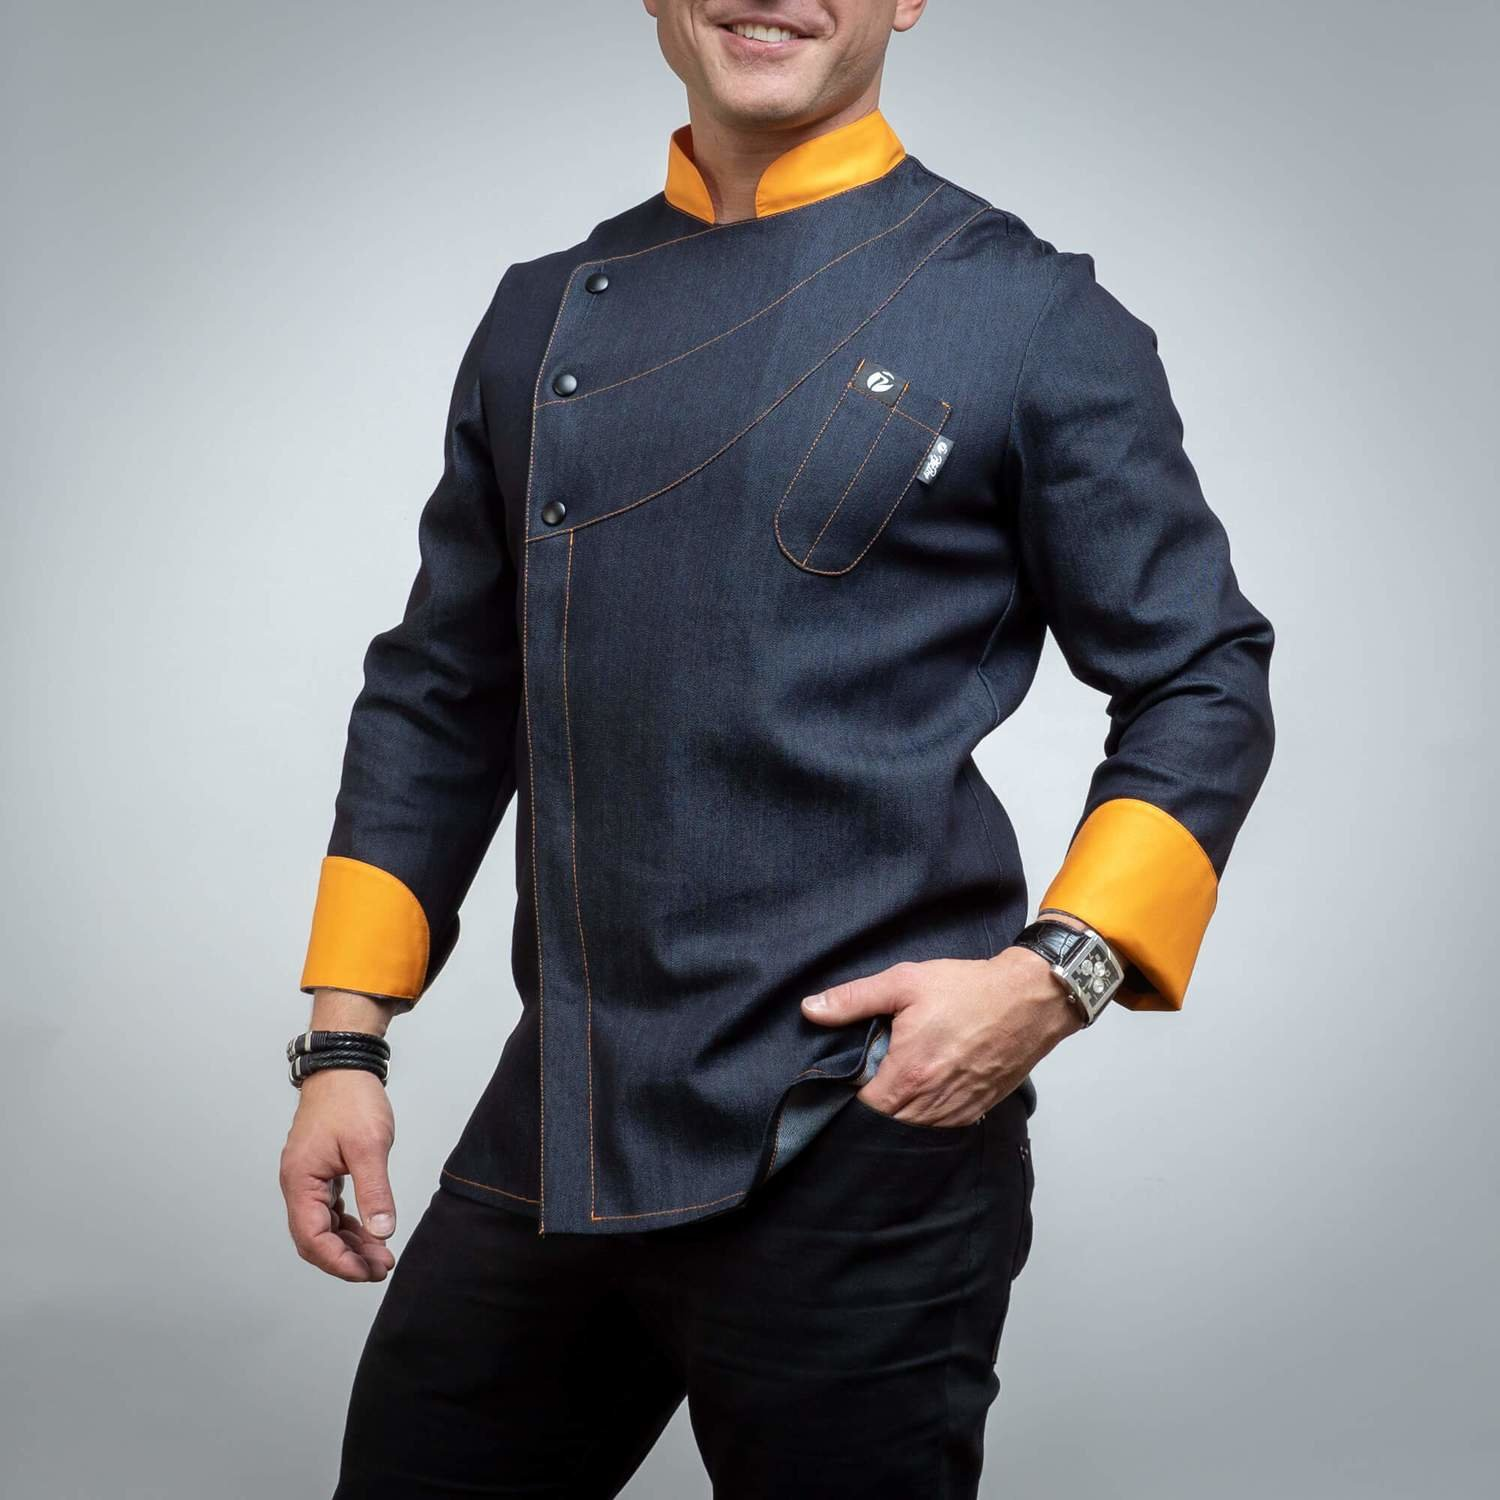 185JOR - CHEF'S JACKET